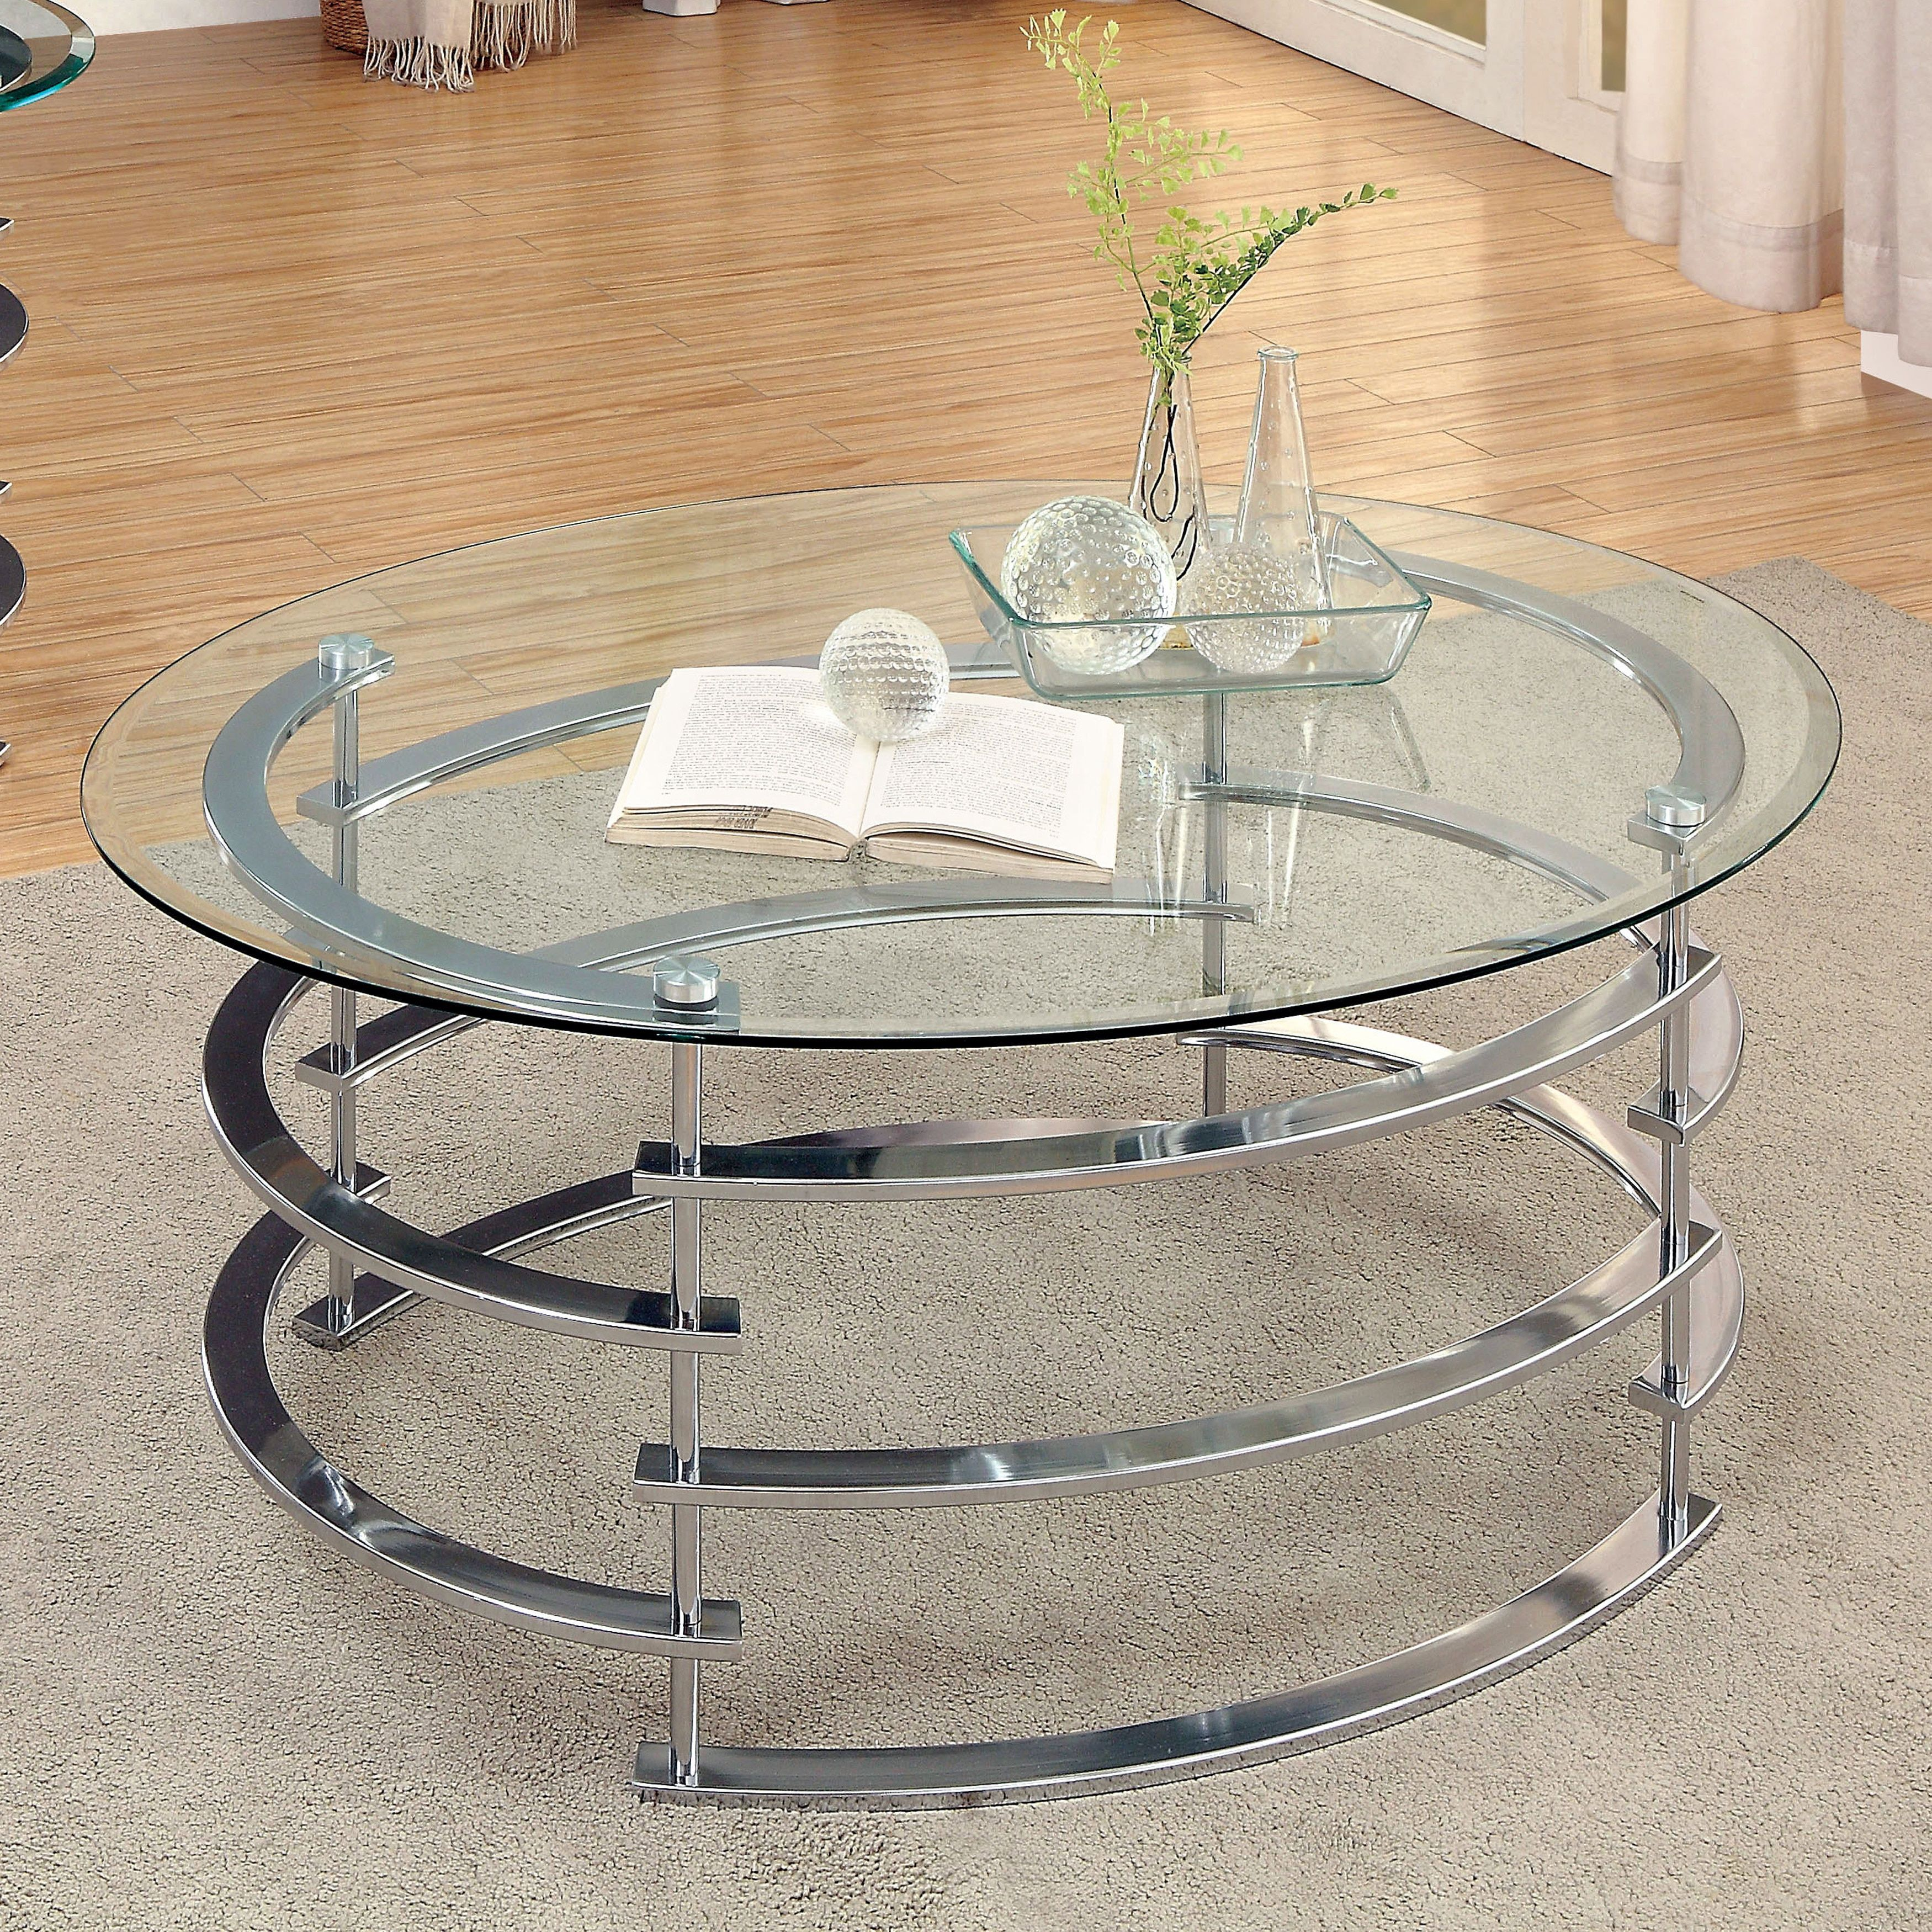 Overstock Com Online Shopping Bedding Furniture Electronics Jewelry Clothing More In 2021 Coffee Table Glass Top Accent Table Glass Top Coffee Table [ 3500 x 3500 Pixel ]